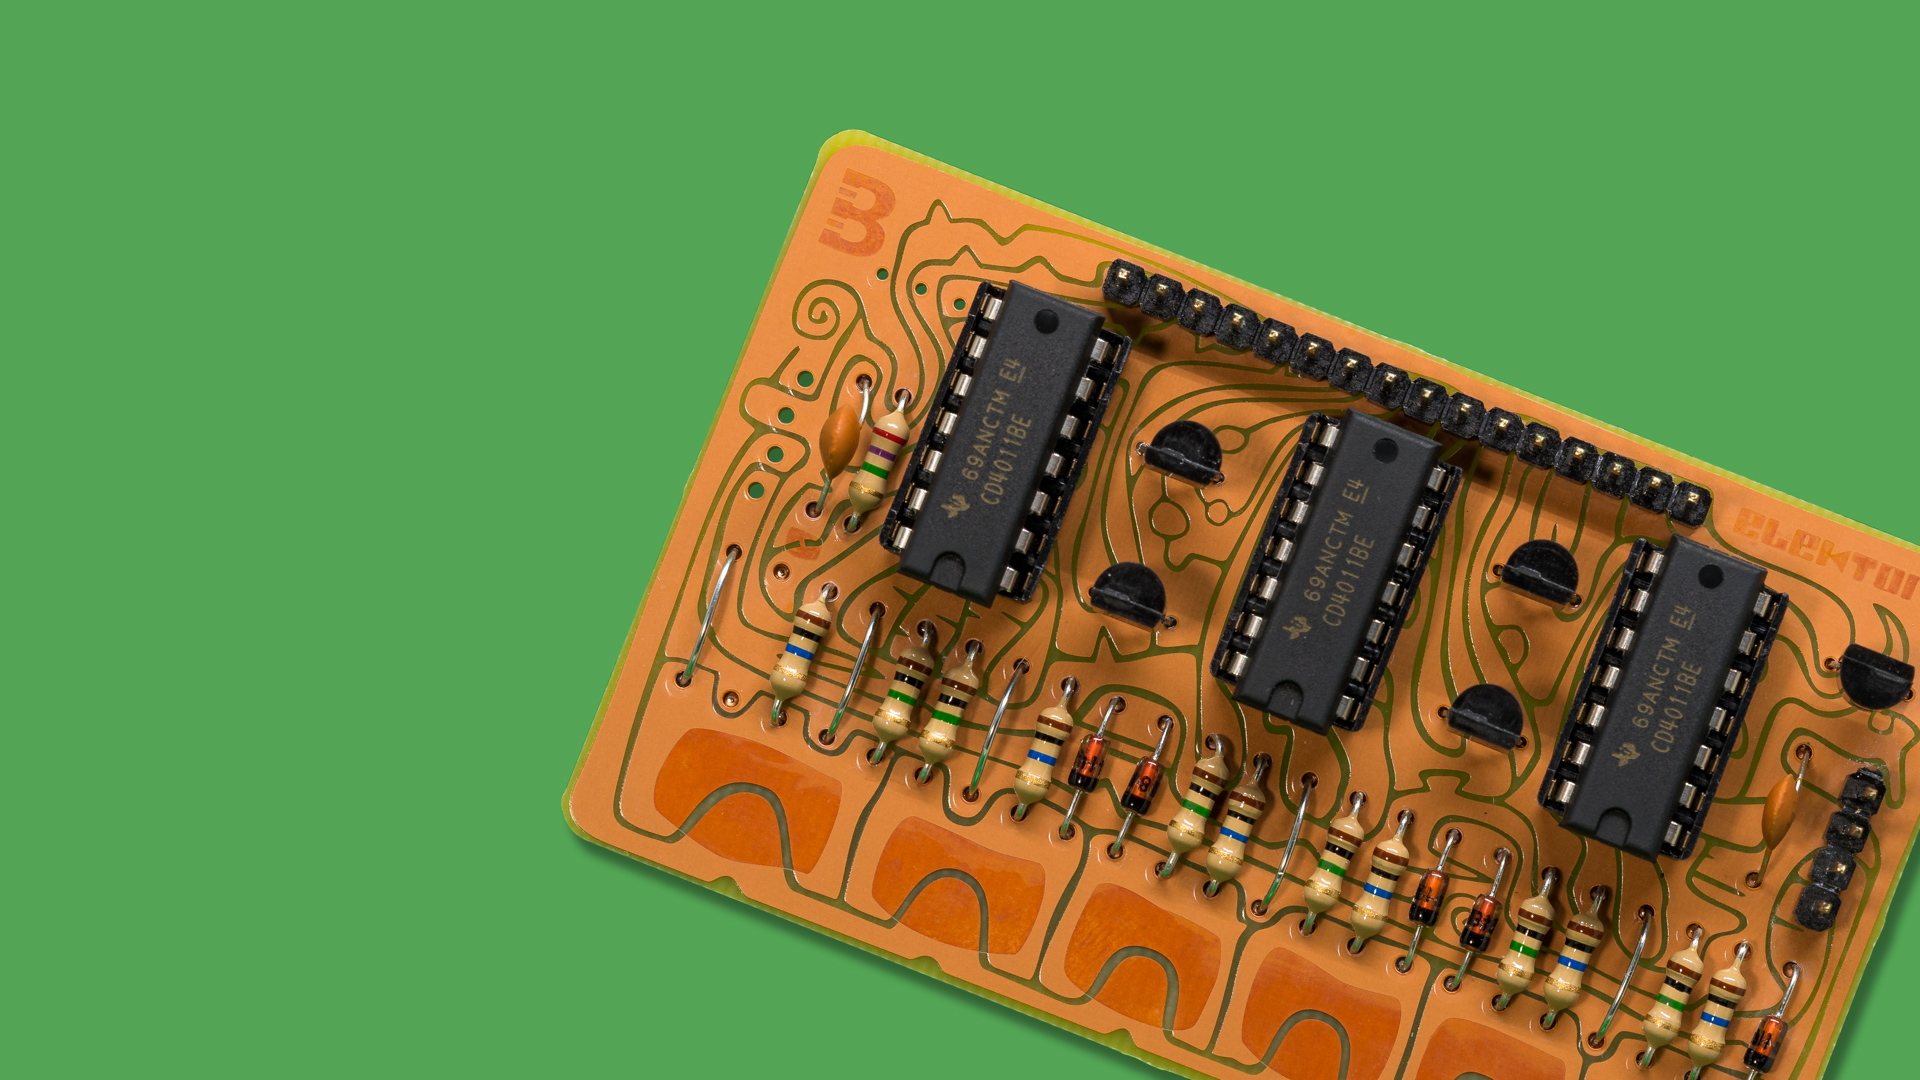 Mostap Project 17 September 2017 Boldportclub Community Digital Electronics Projects Hobbyist From Forty Years Ago And Admire The Optimised Design Skill Of Those Who Created Them Is A Version